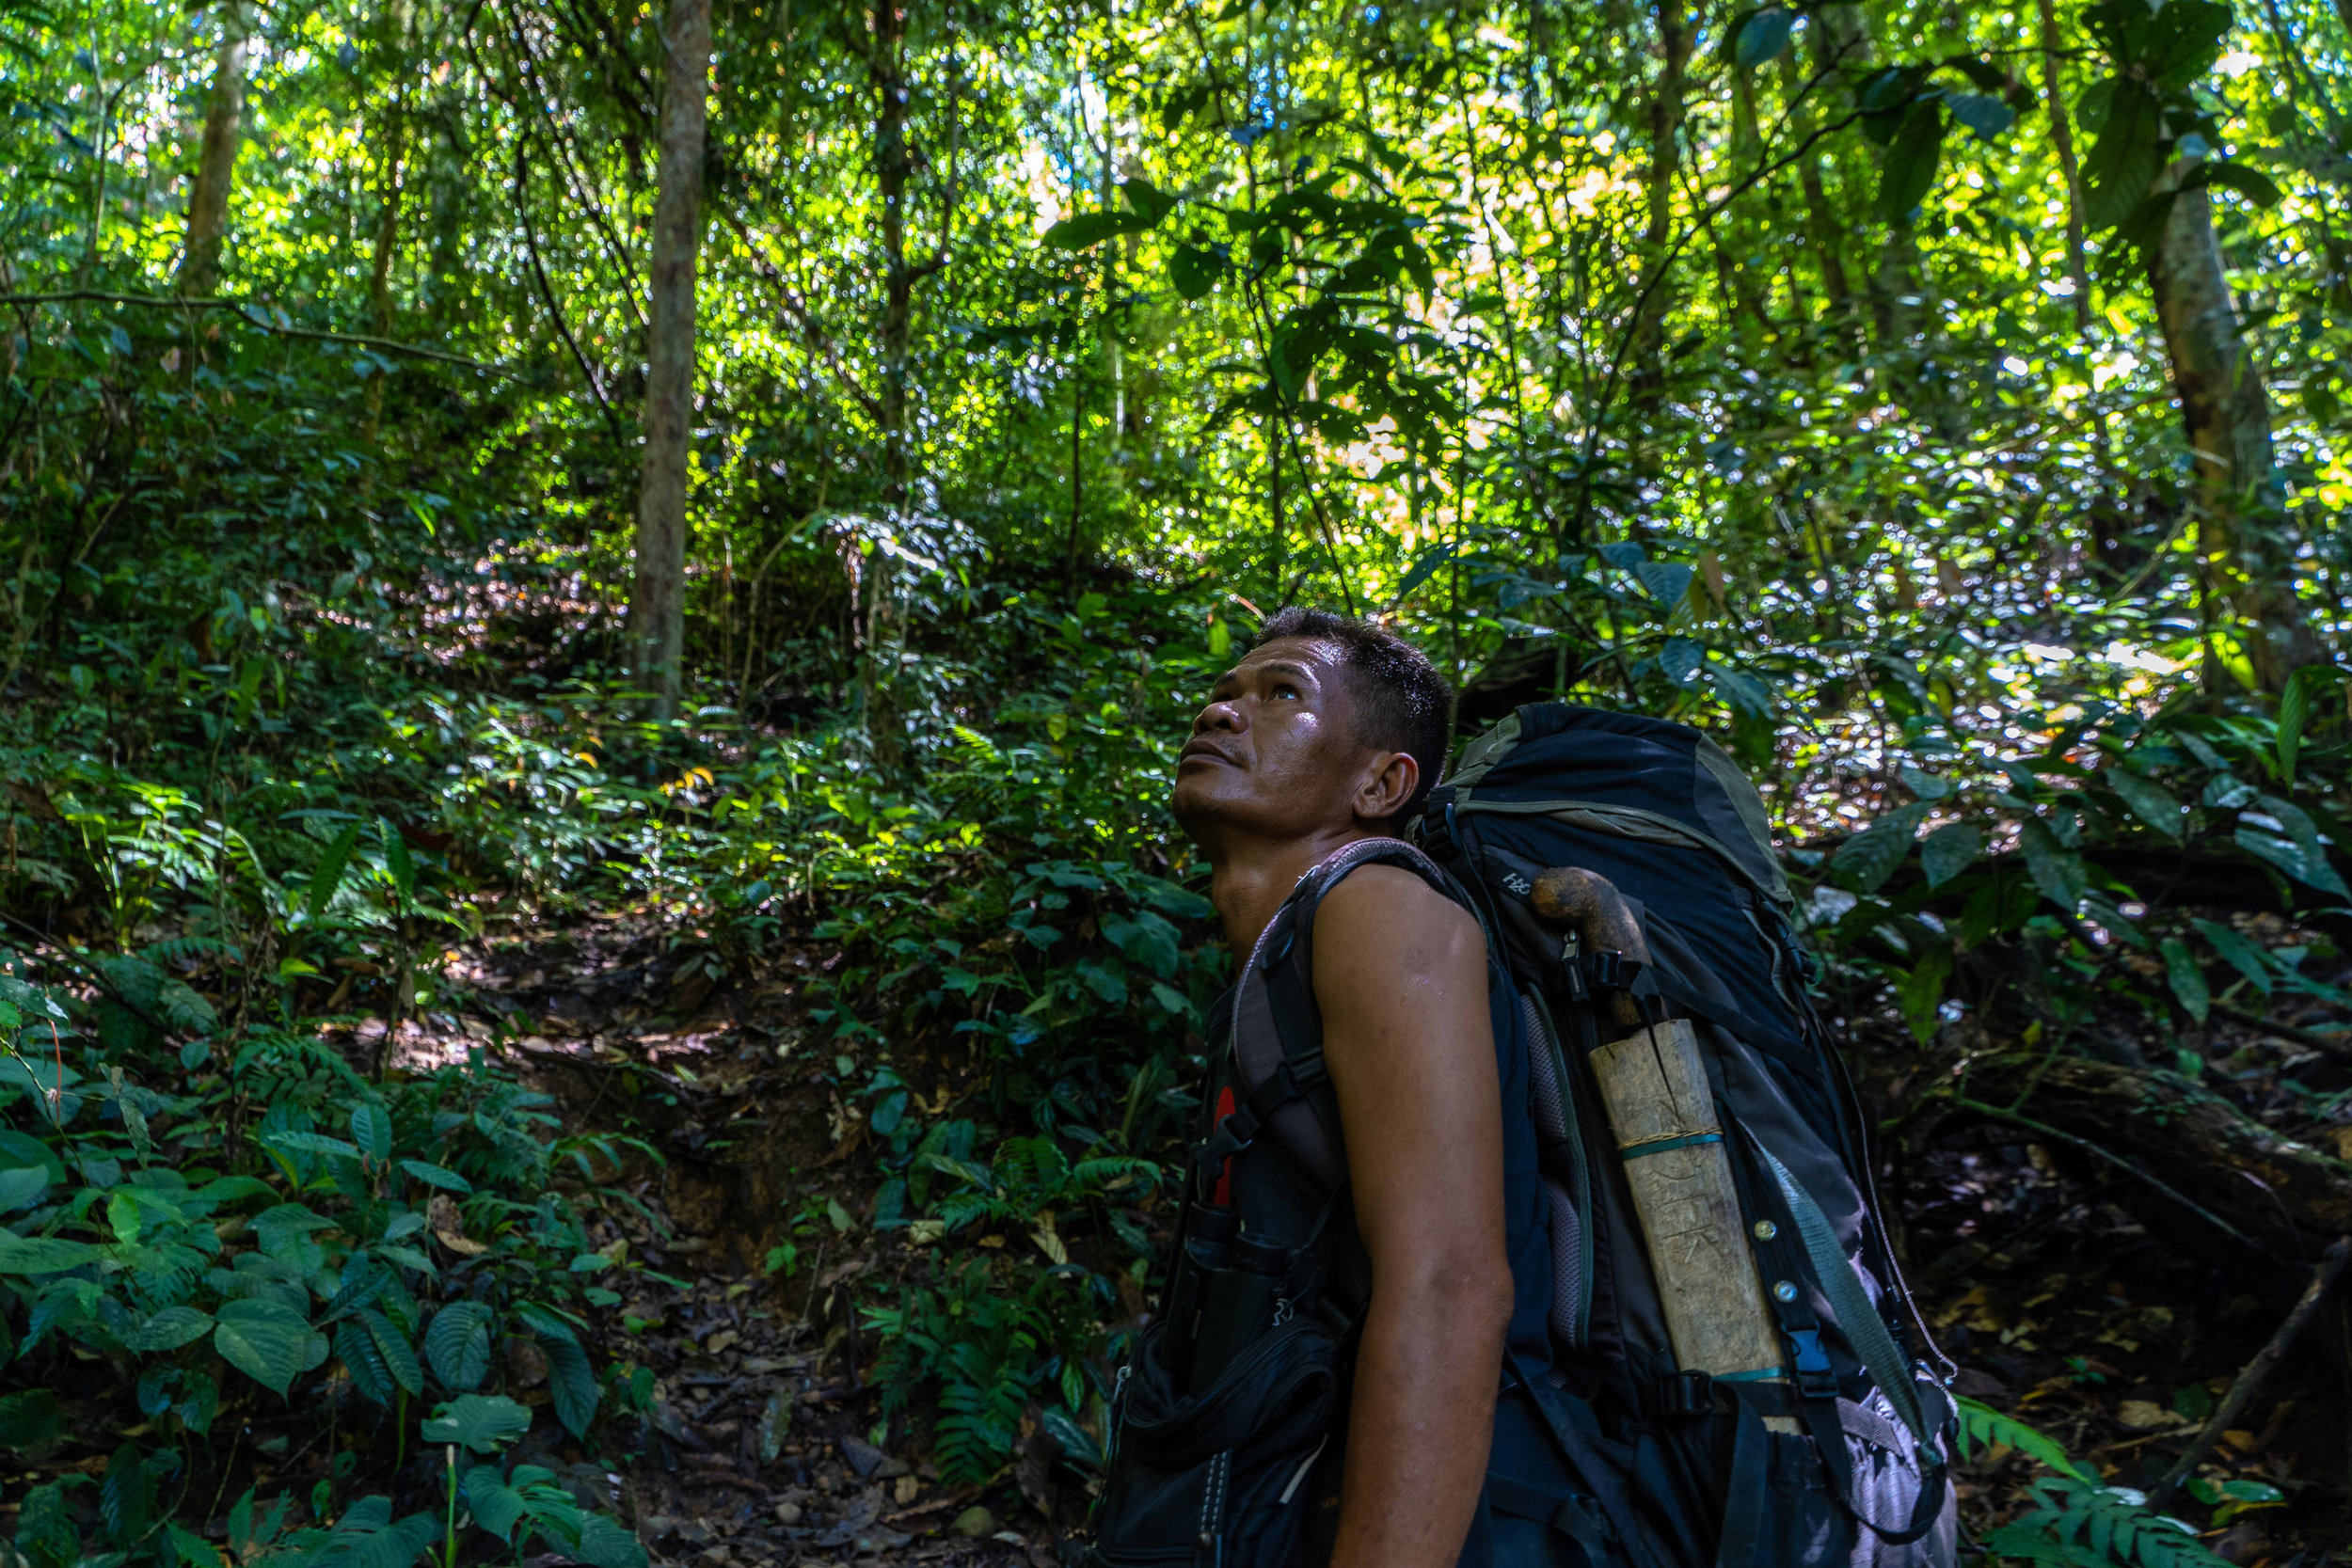 Jhon, our trekking guide in Sumatra, looks for wildlife in the trees.